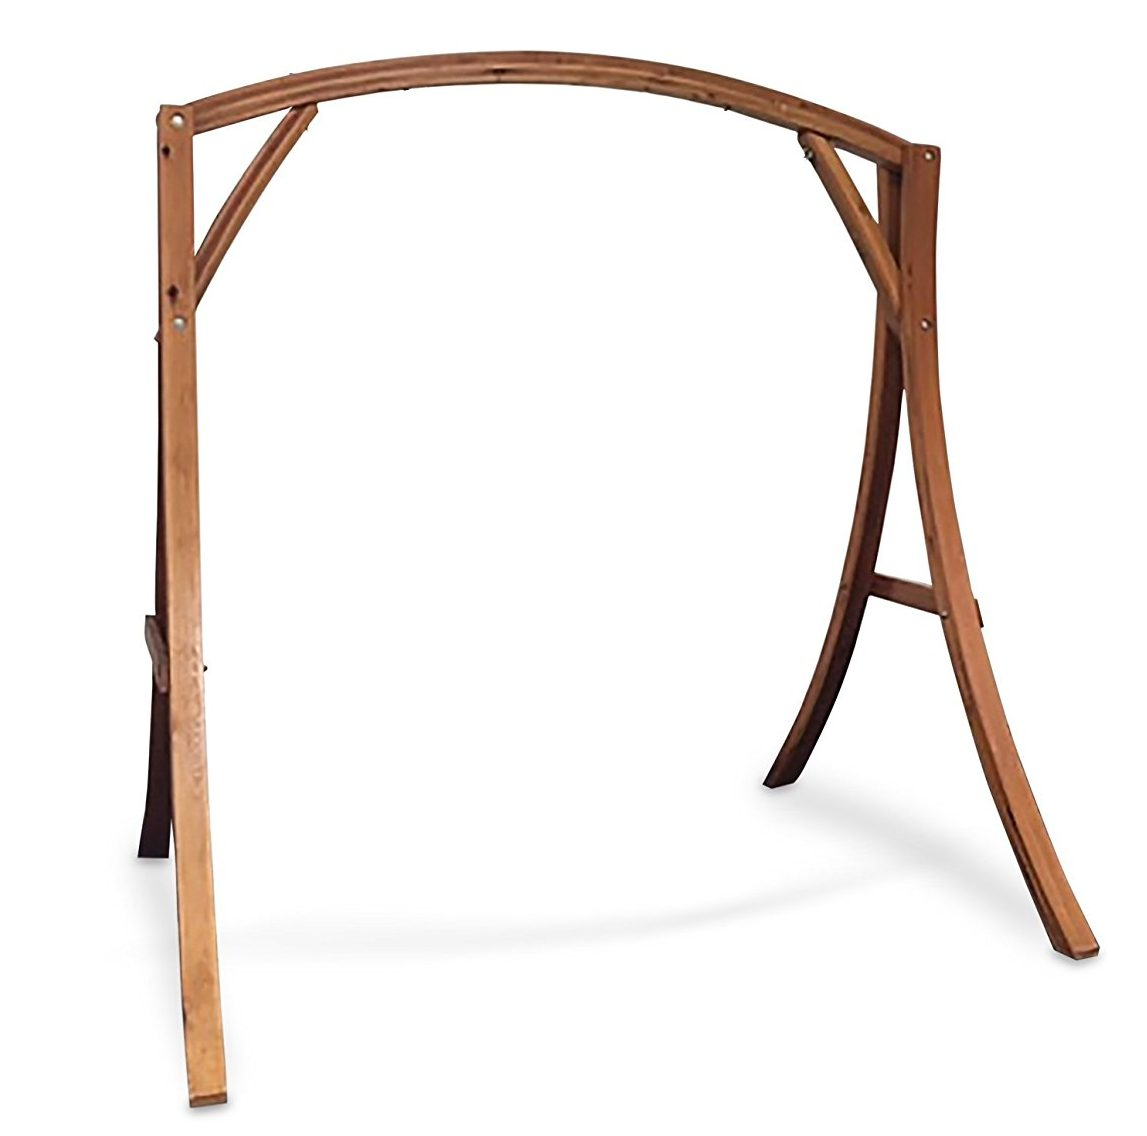 Wooden Arch Wooden Hammock Chair Swing Stand